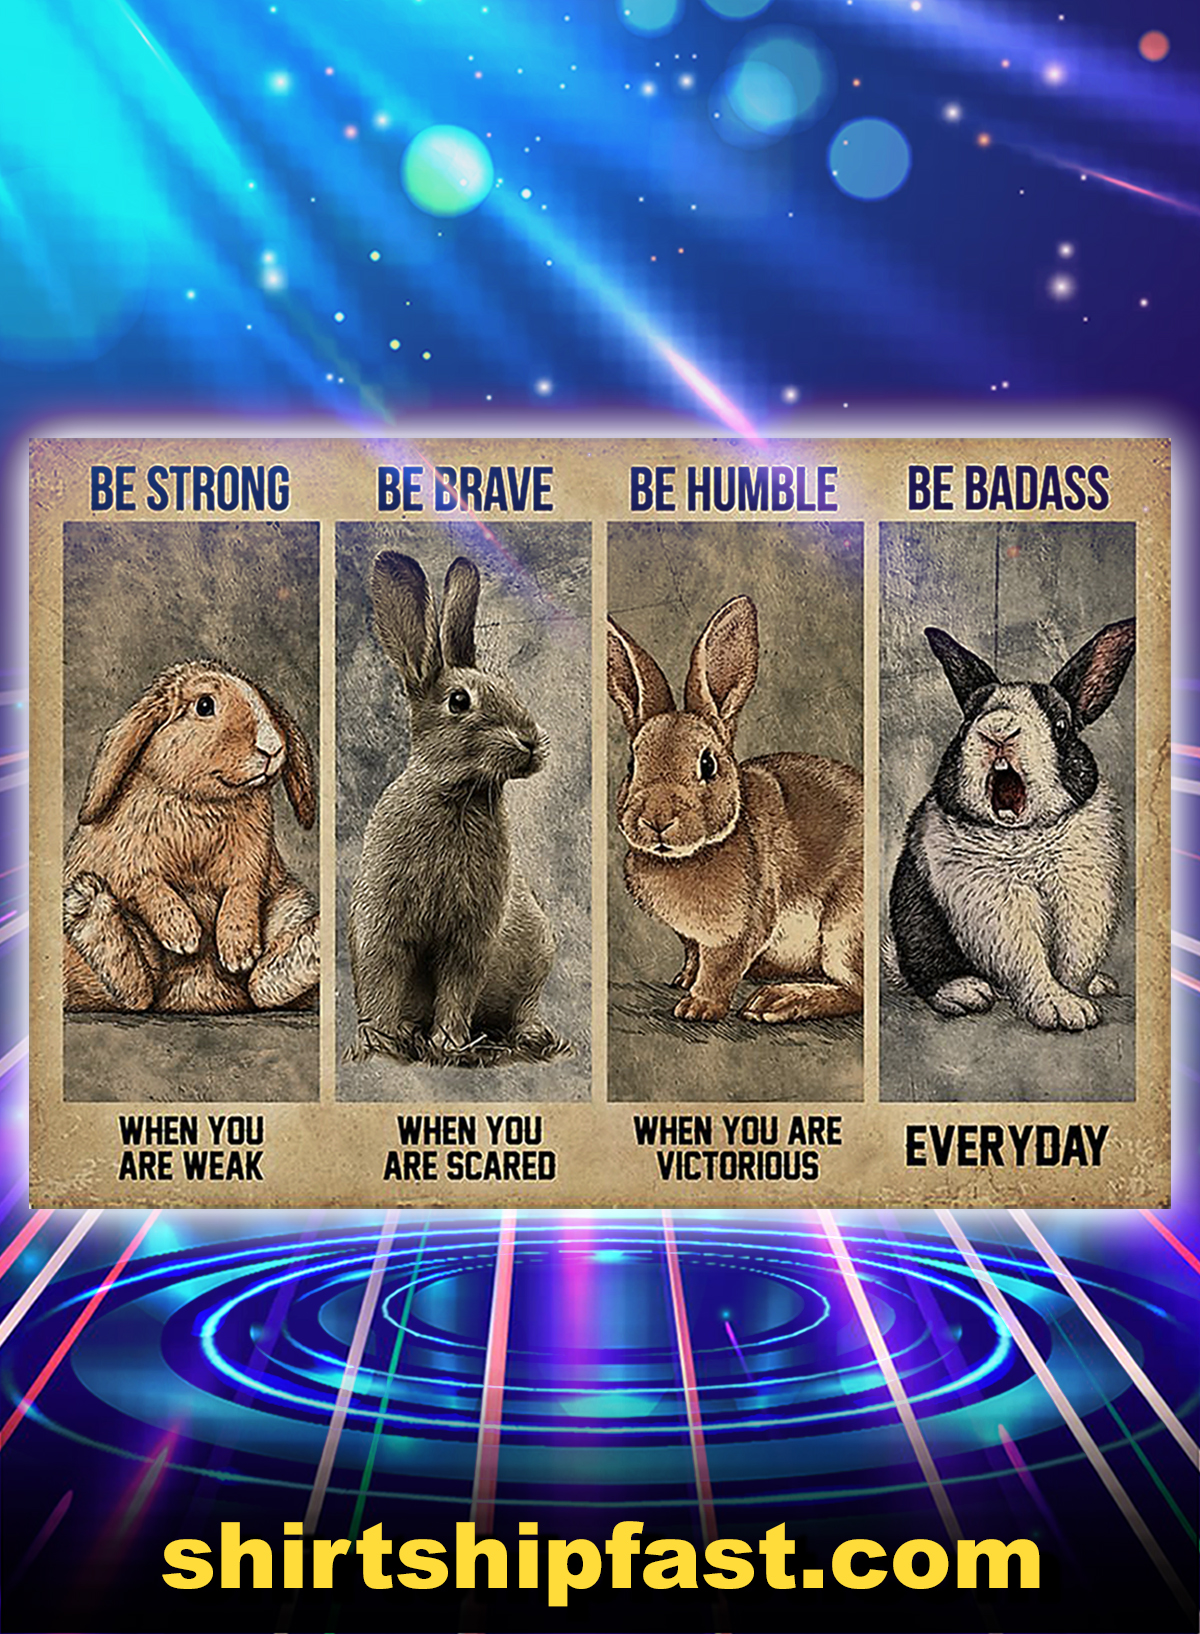 Be strong be brave be humble be badass rabbit poster - A1